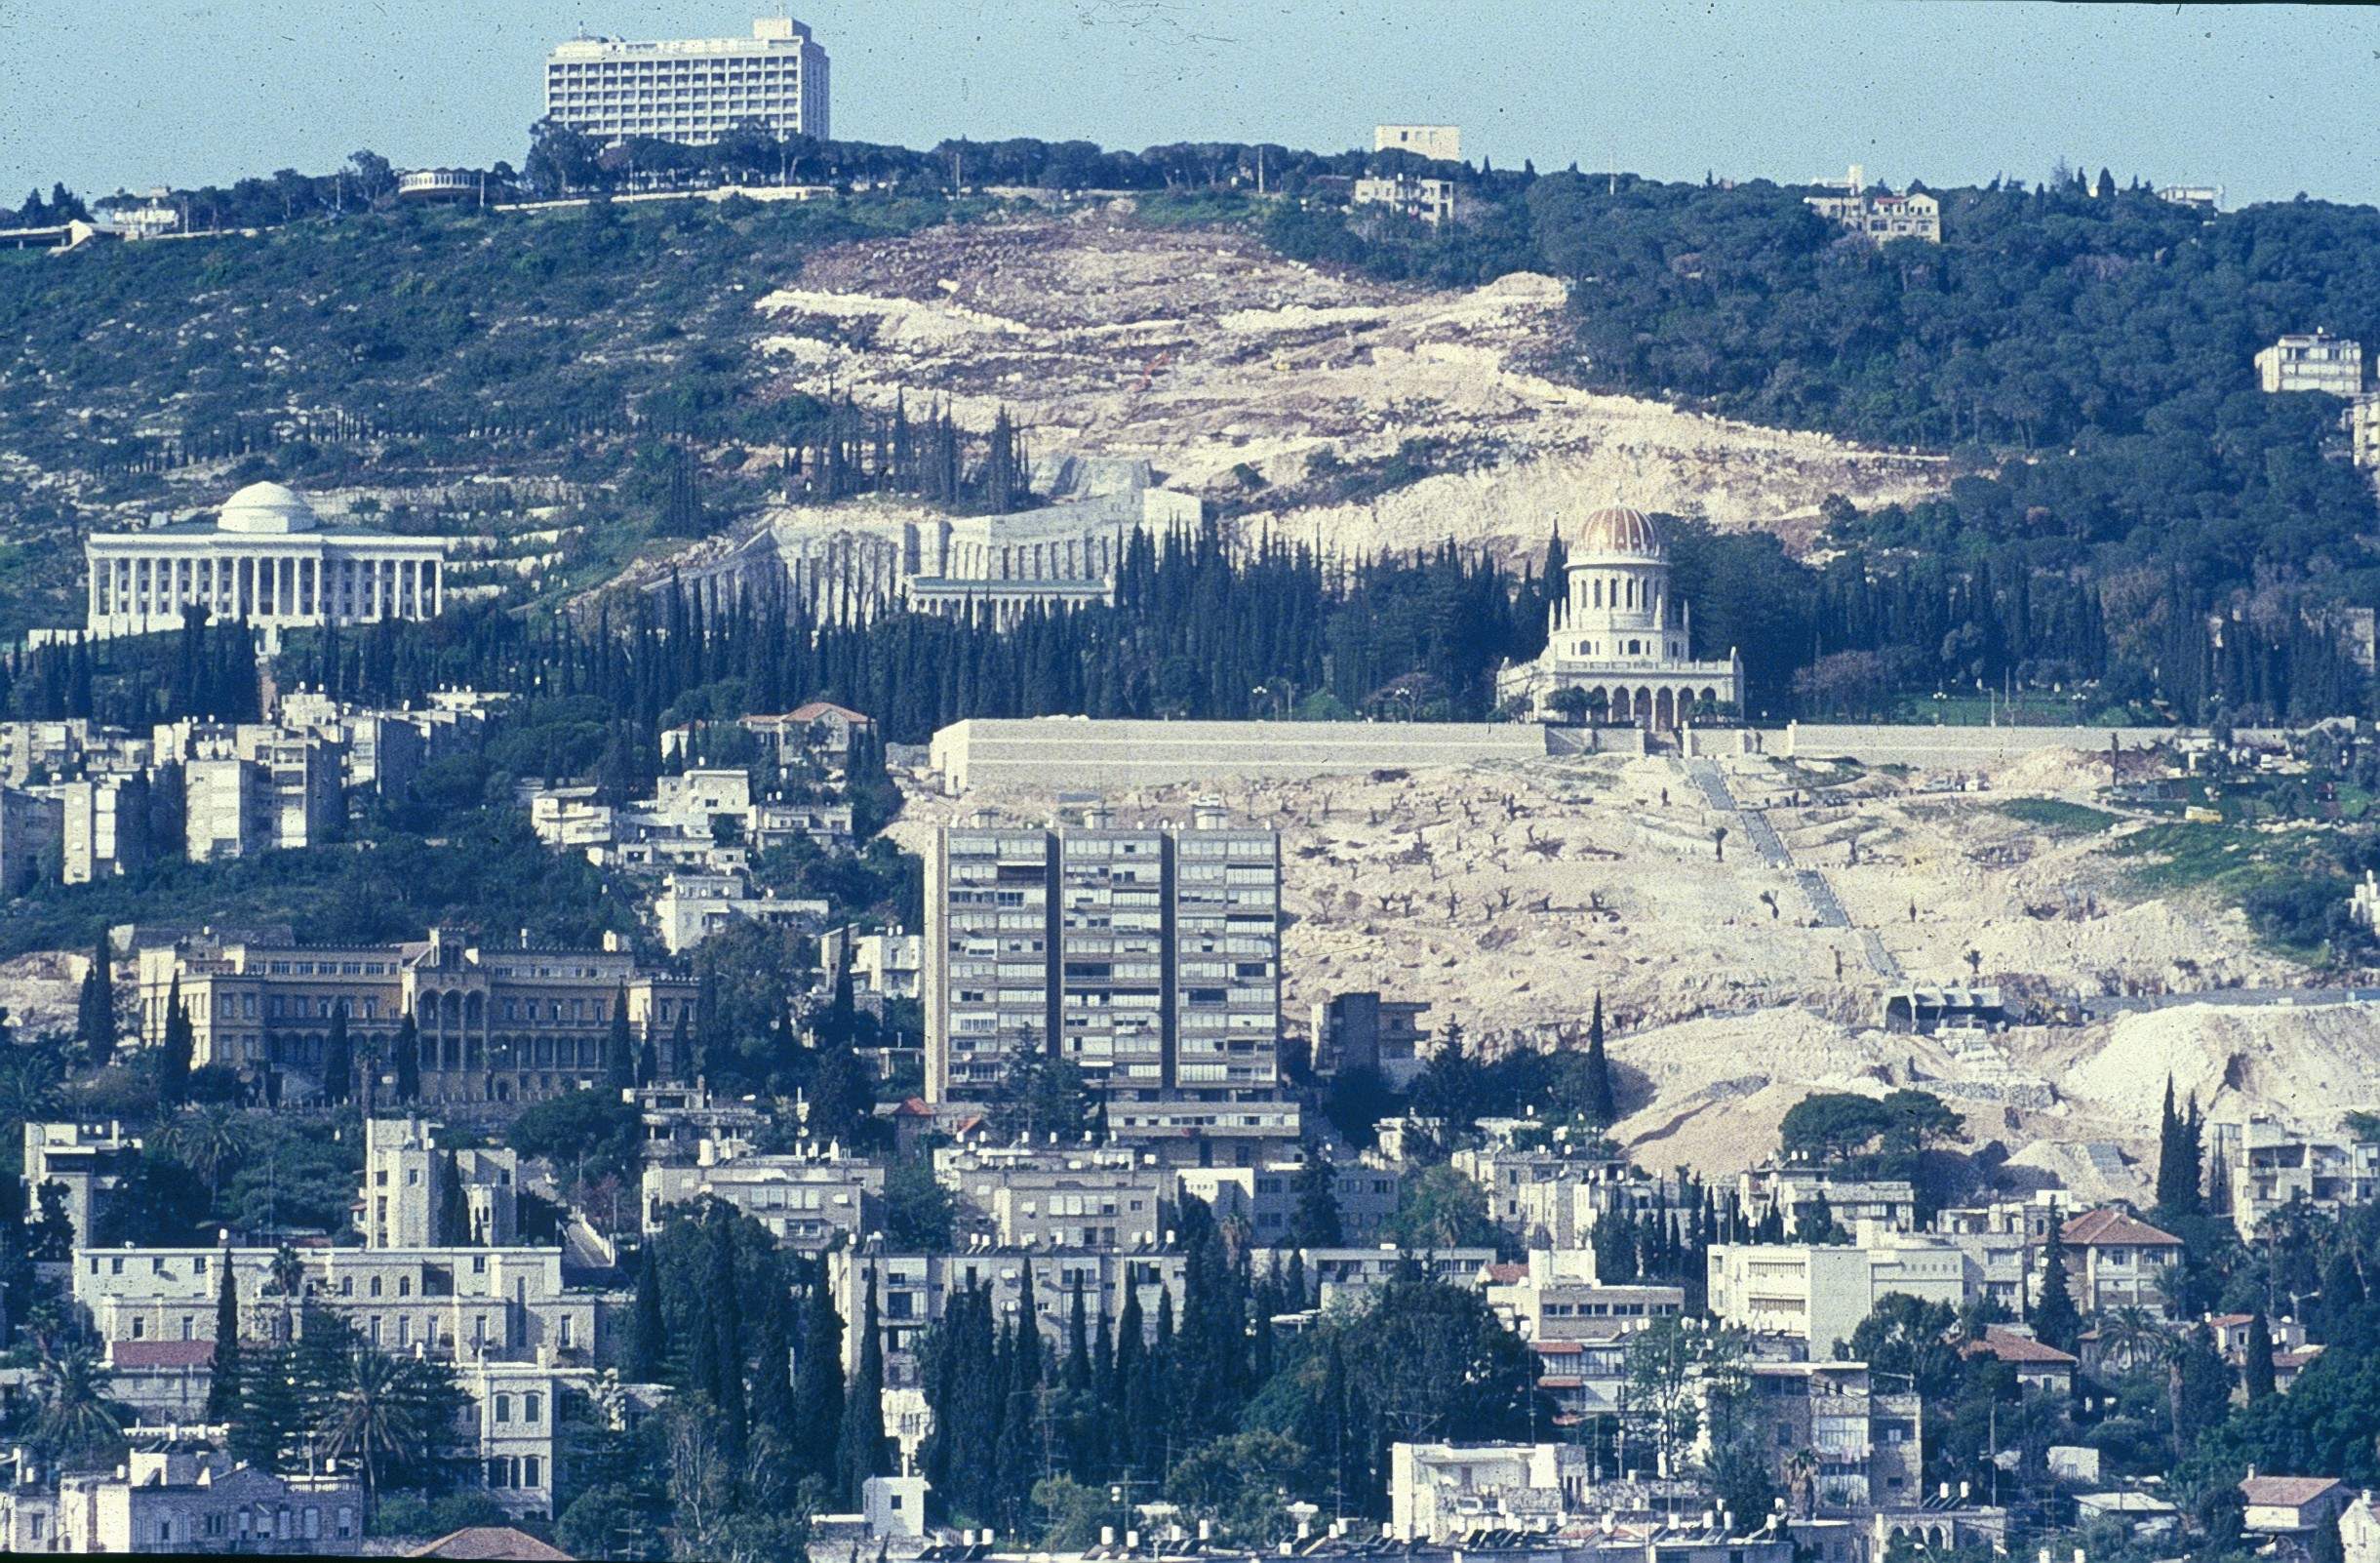 The 1990s witnessed the challenging task to build garden terraces from the bottom to the top of Mount Carmel. This photo show the site being prepared for construction of the terrraces.The completion of the project fulfilled the vision of 'Abdu'l-Baha and provided an exquisite setting for the jewel that is the Shrine of the Bab.